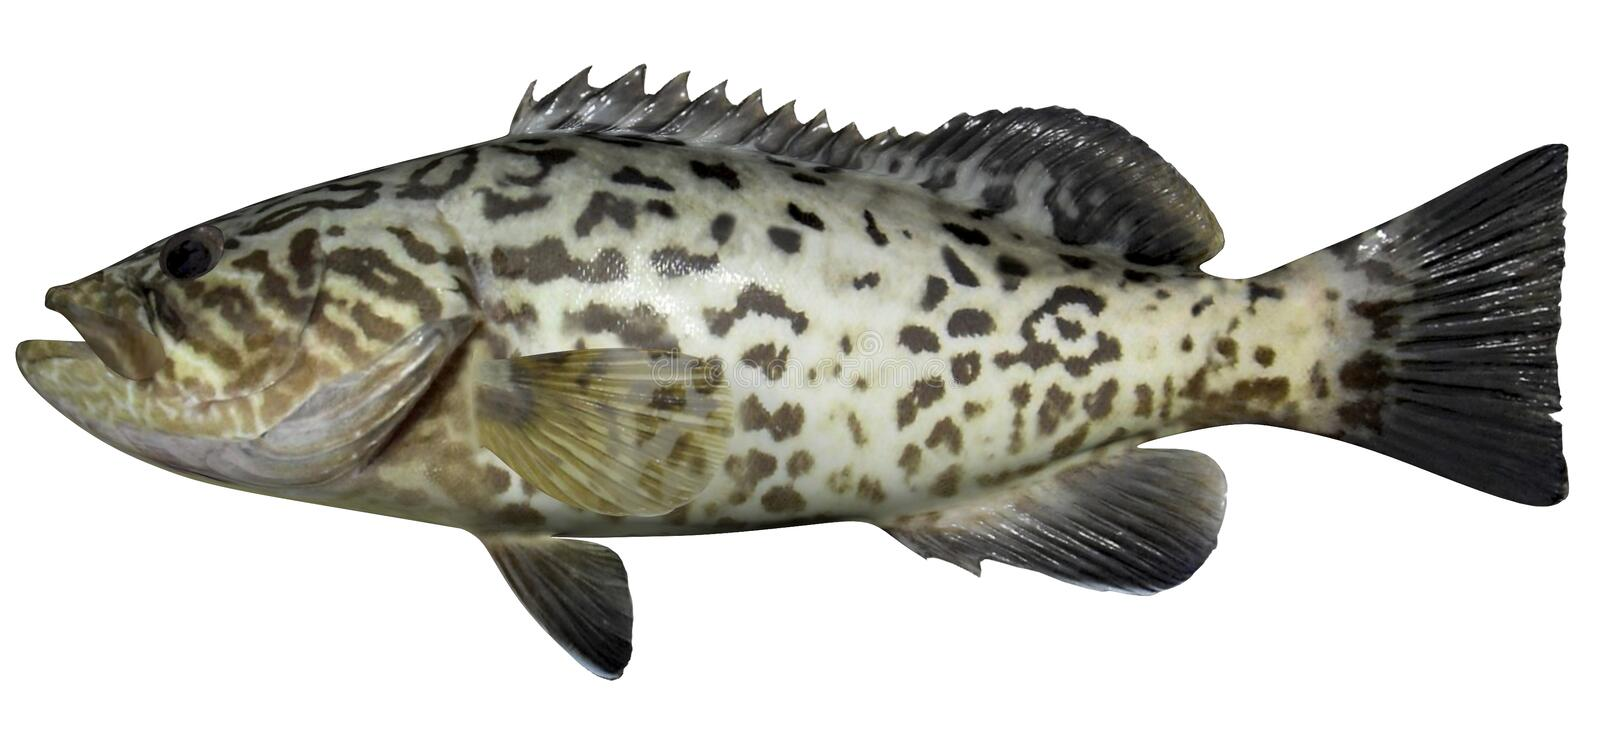 Gag Grouper. Fish isolated on white background stock photography